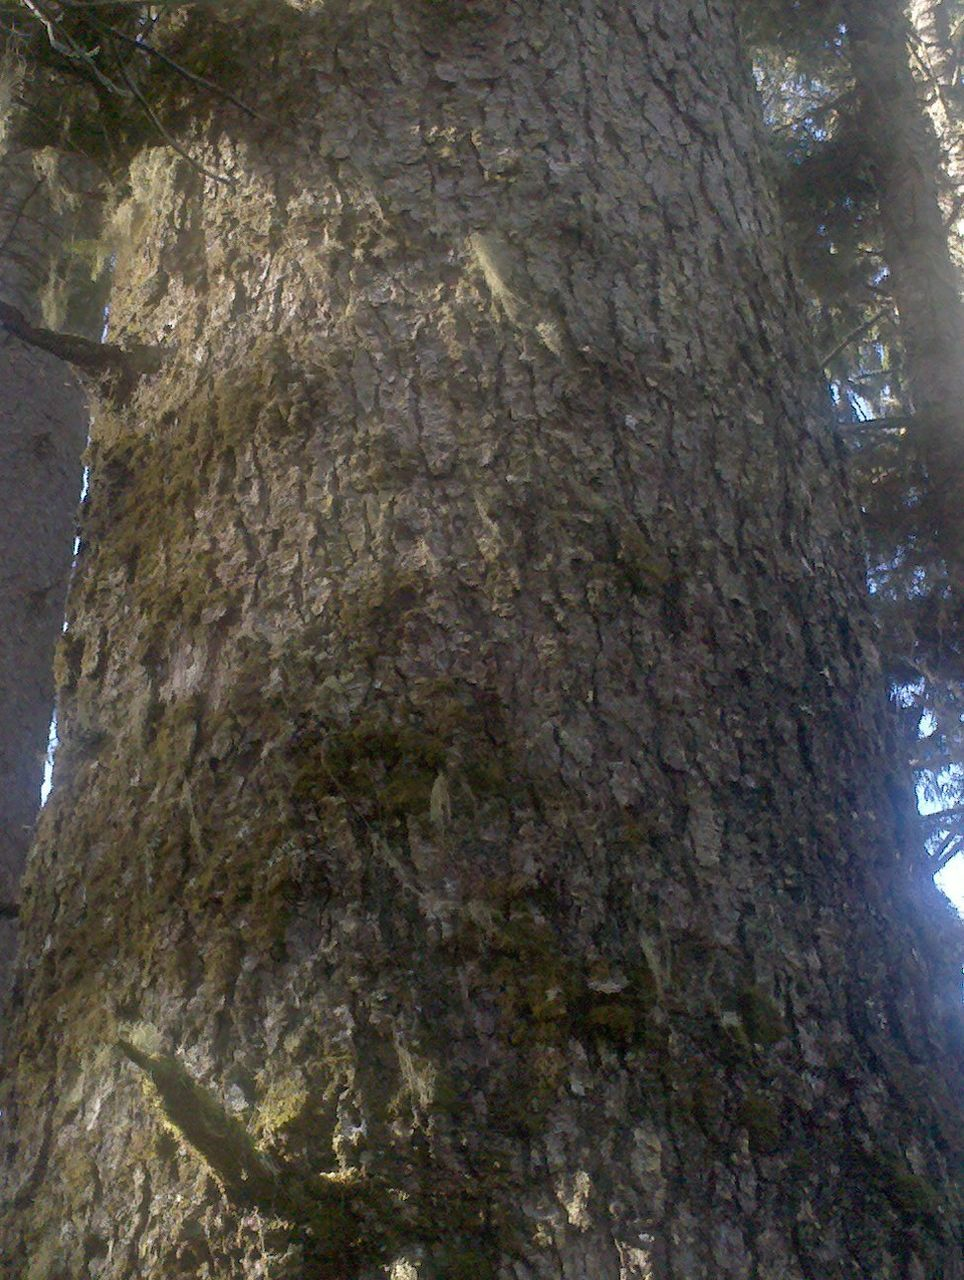 tree trunk, tree, nature, no people, bark, growth, day, outdoors, close-up